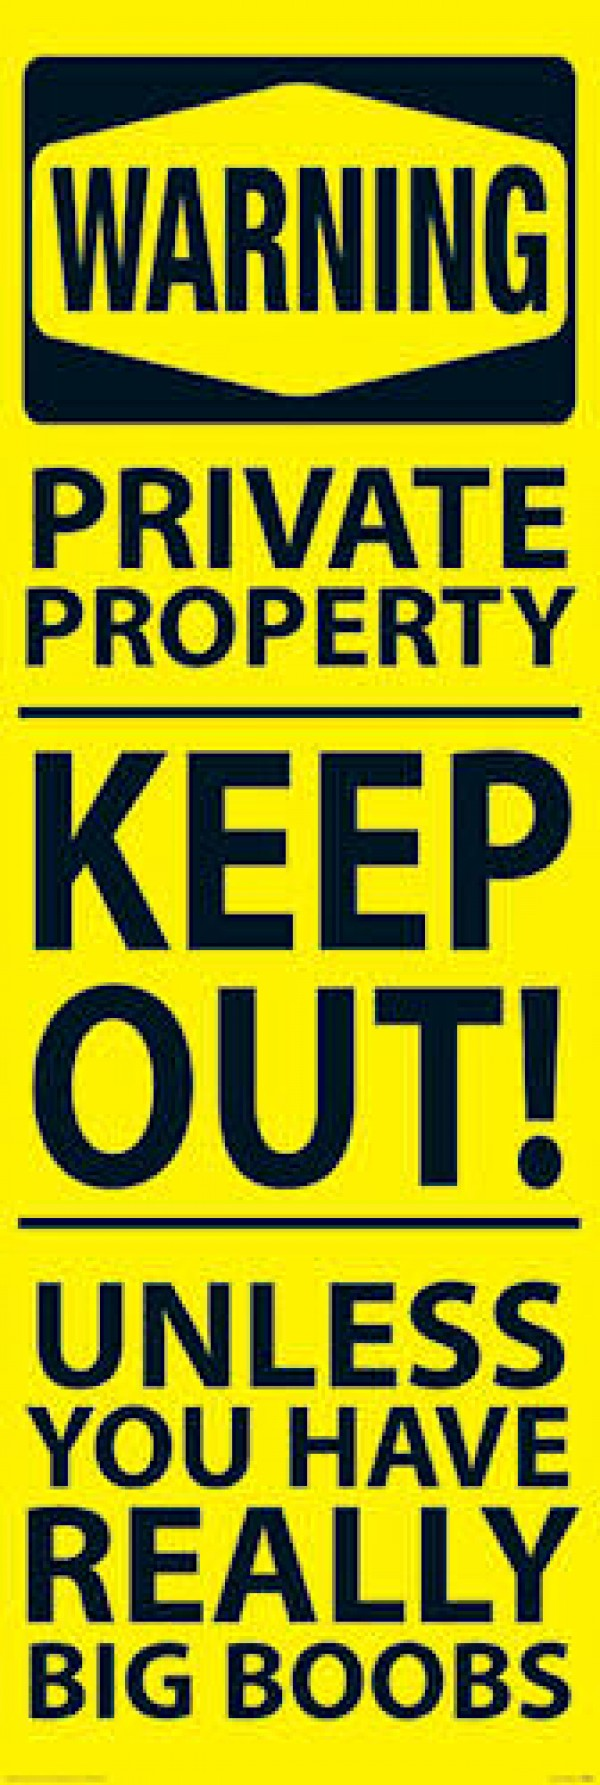 Warning Keep Out Door Poster